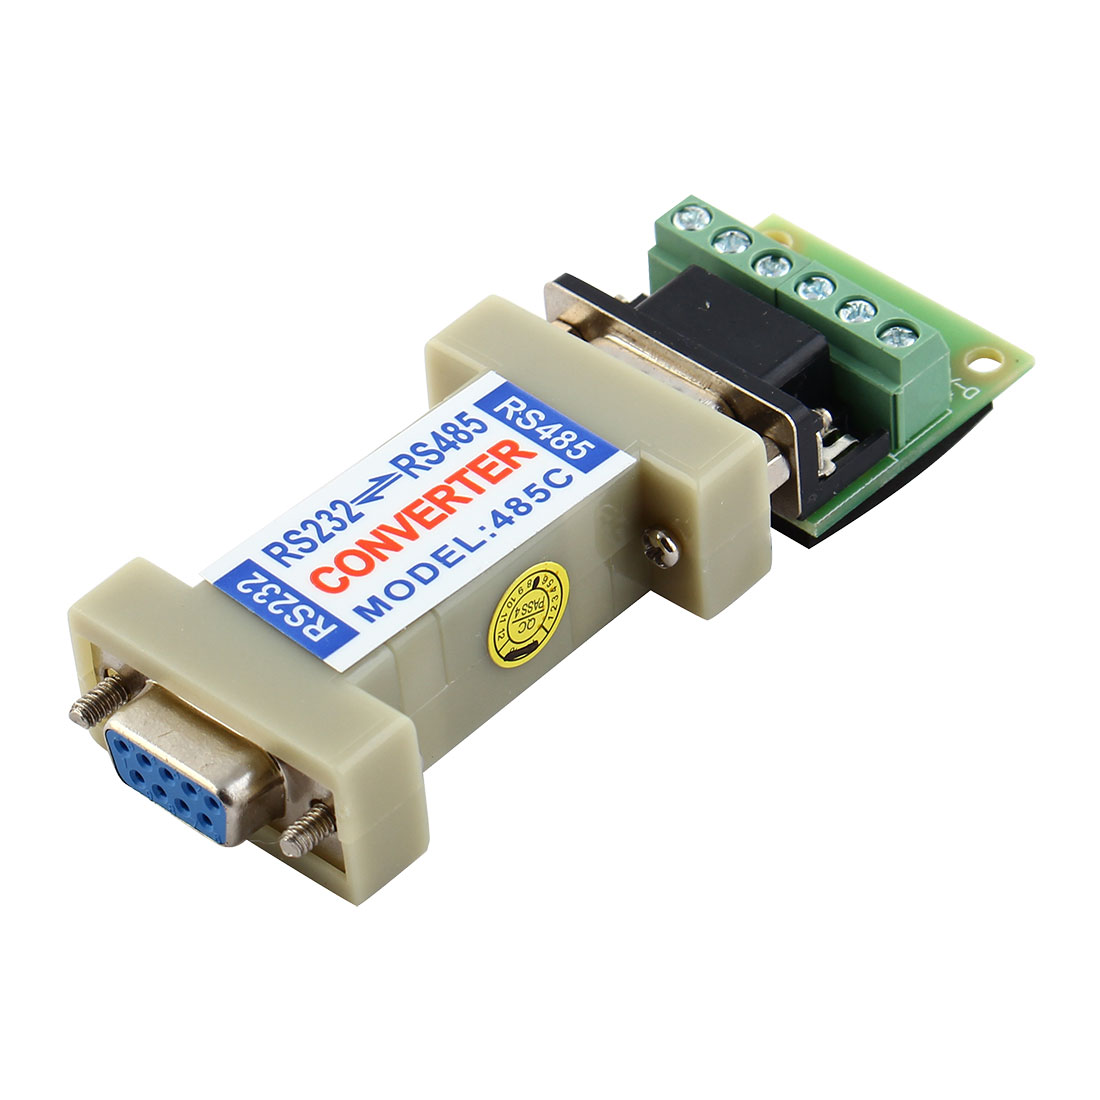 0RS485 9 Pin to RS232 Communication Data Converter Adaptor